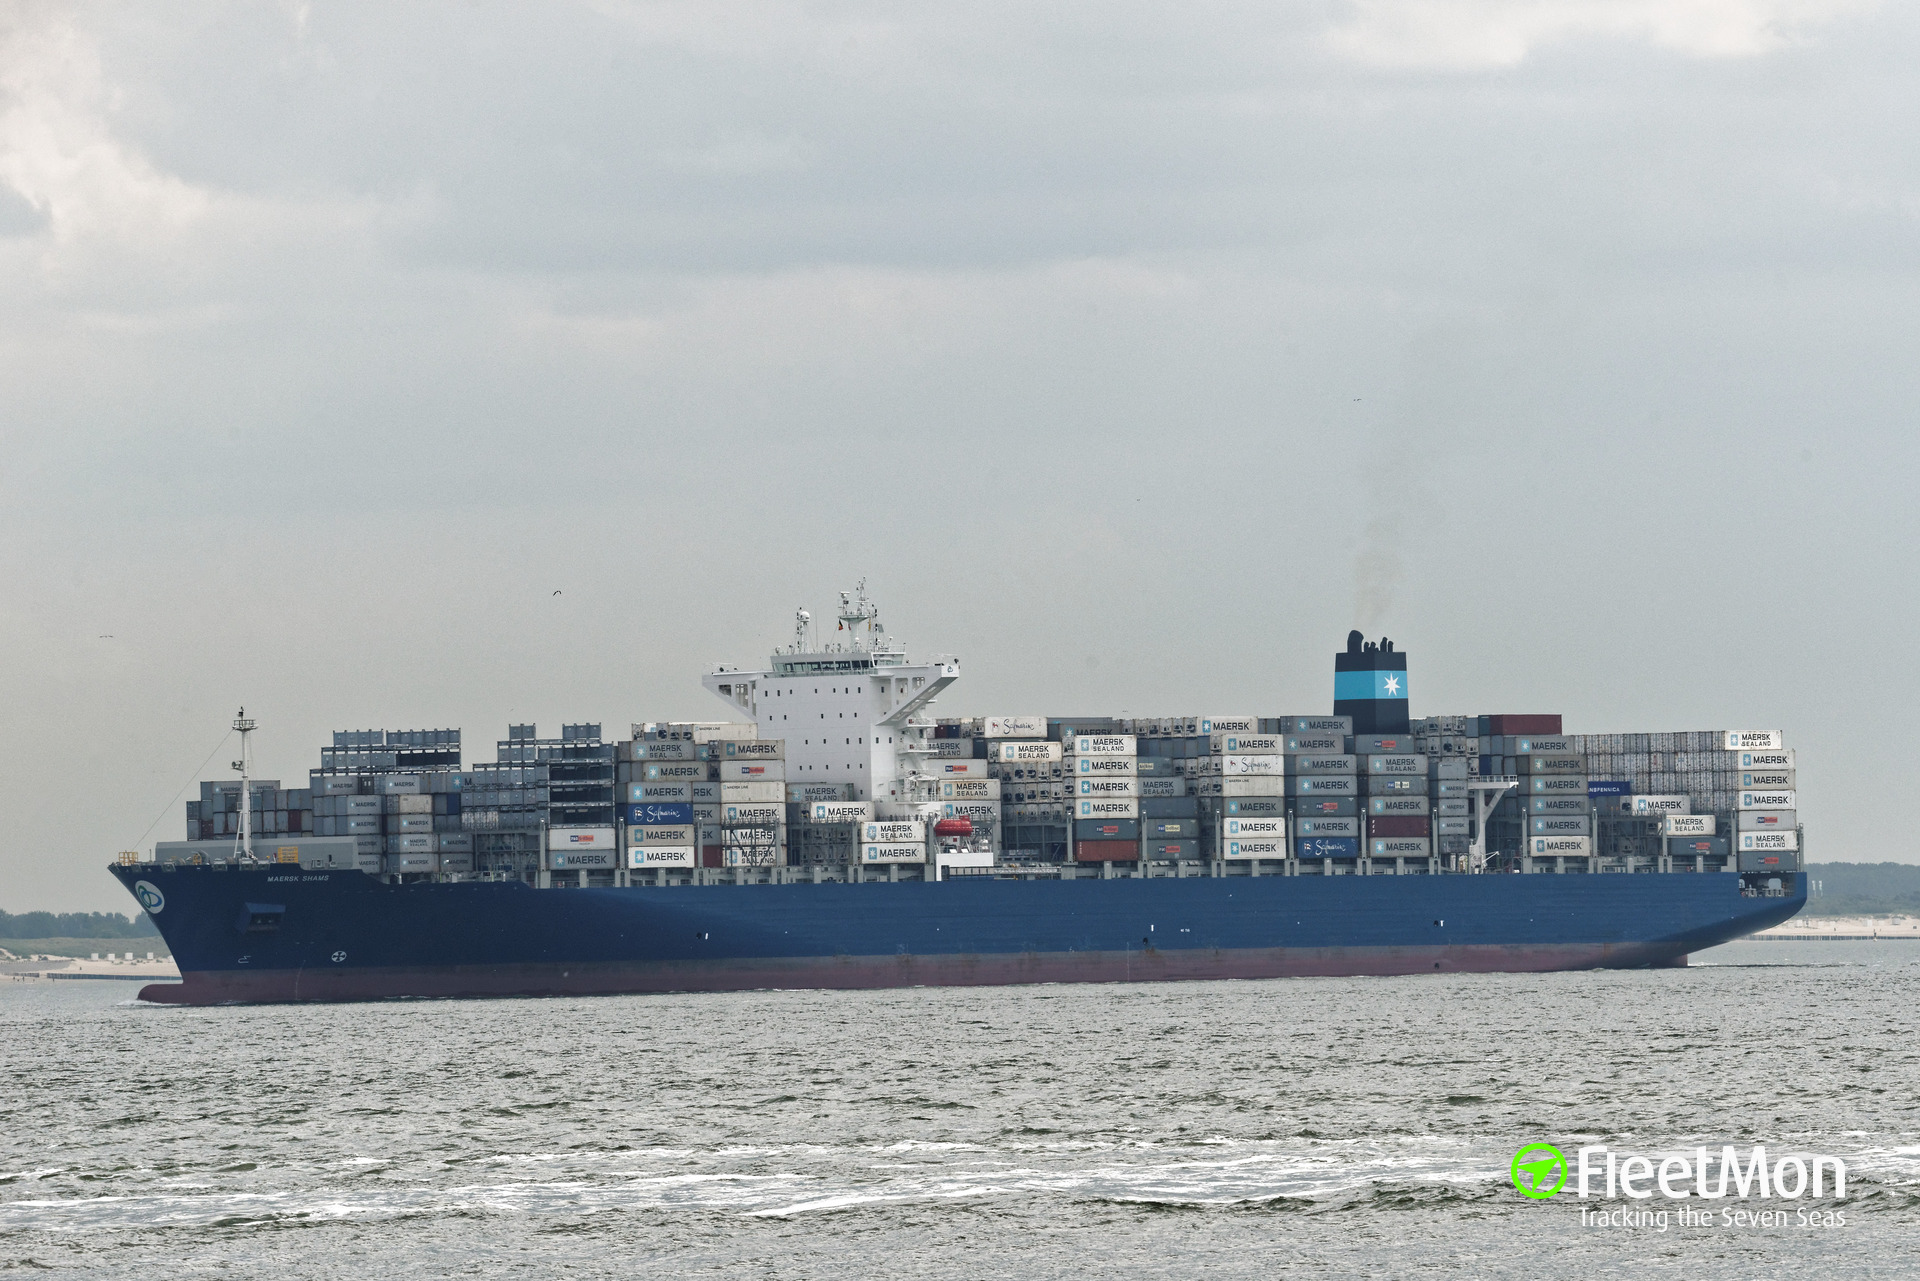 Mega container ship MAERSK SHAMS aground in Suez Canal: UPDATE